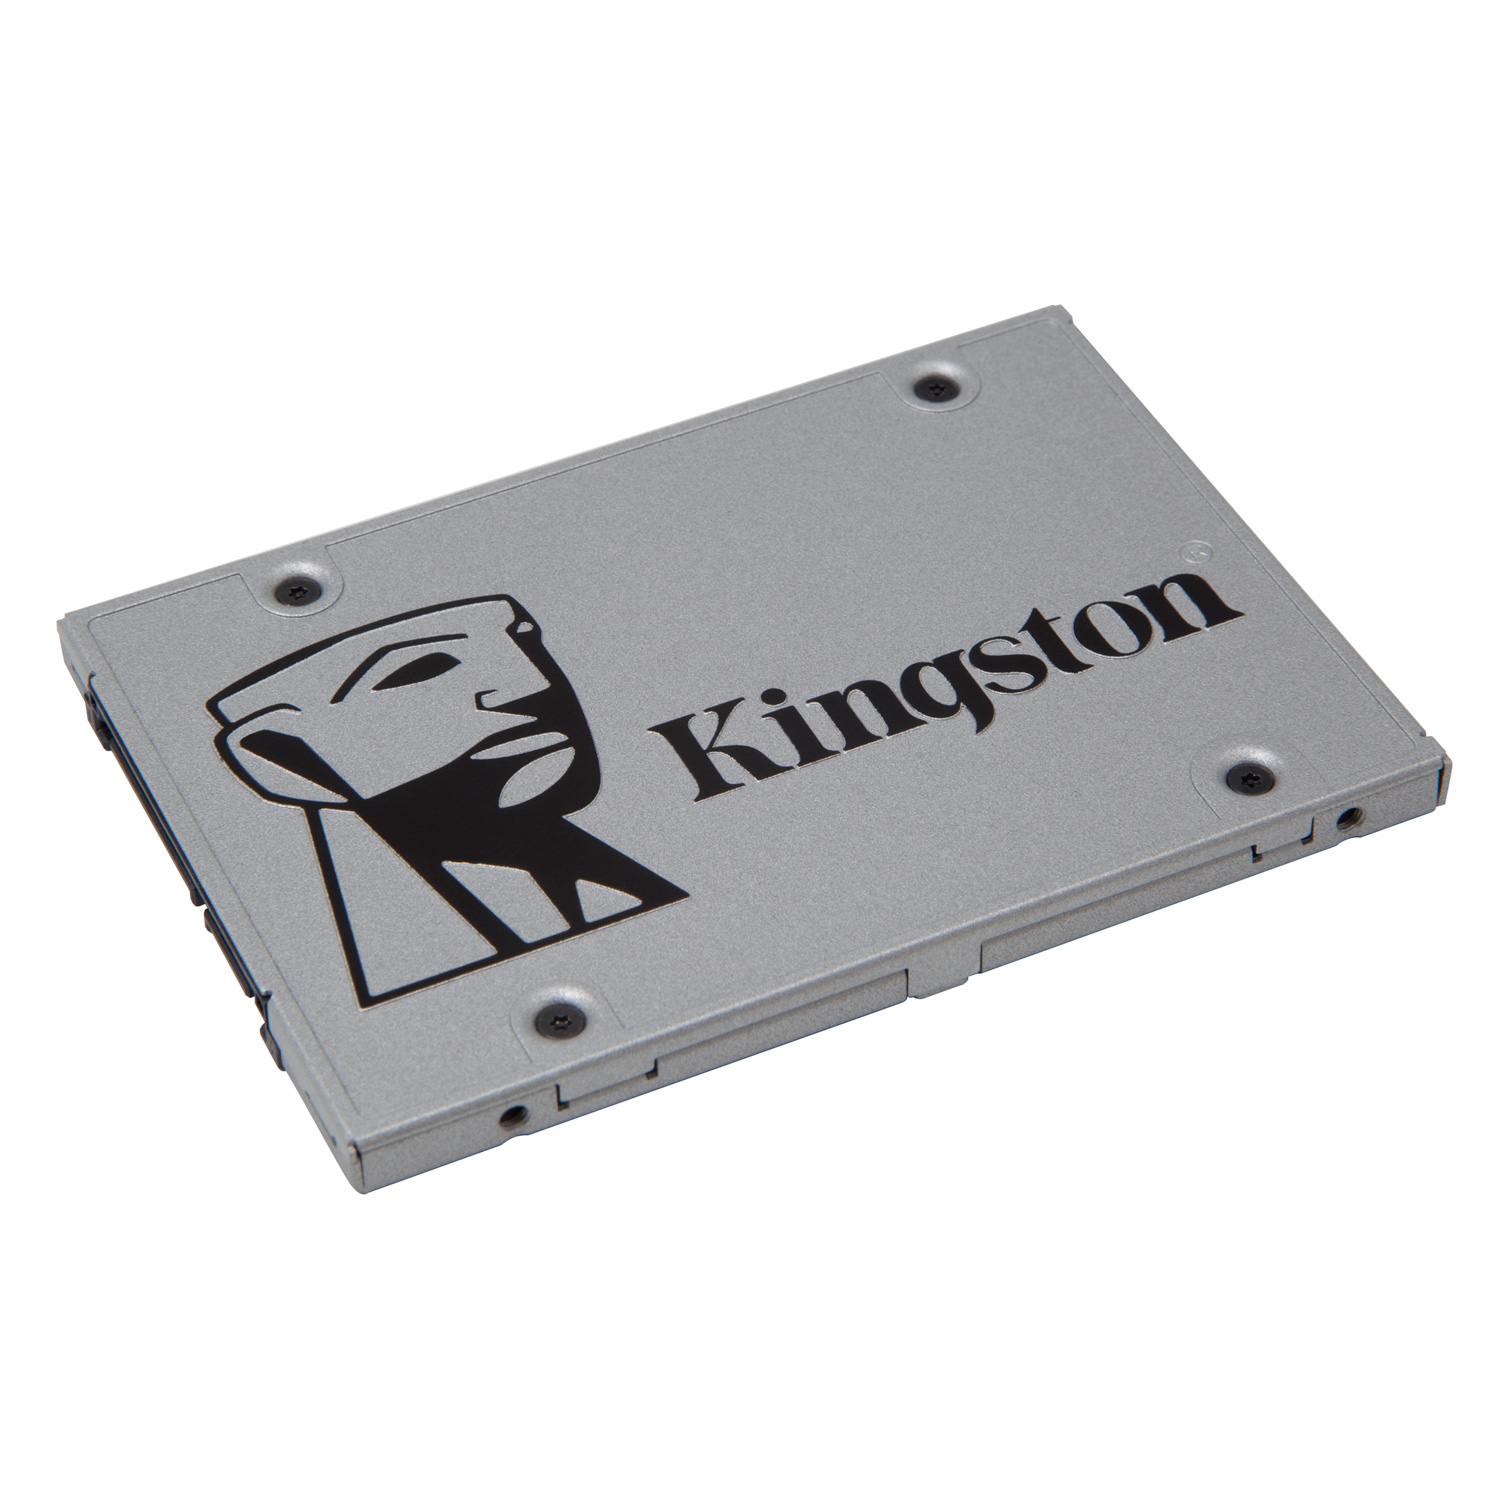 "Disque SSD Kingston SSD UV400 960 Go SSD 960 Go 2.5"" 7mm Serial ATA 6Gb/s"